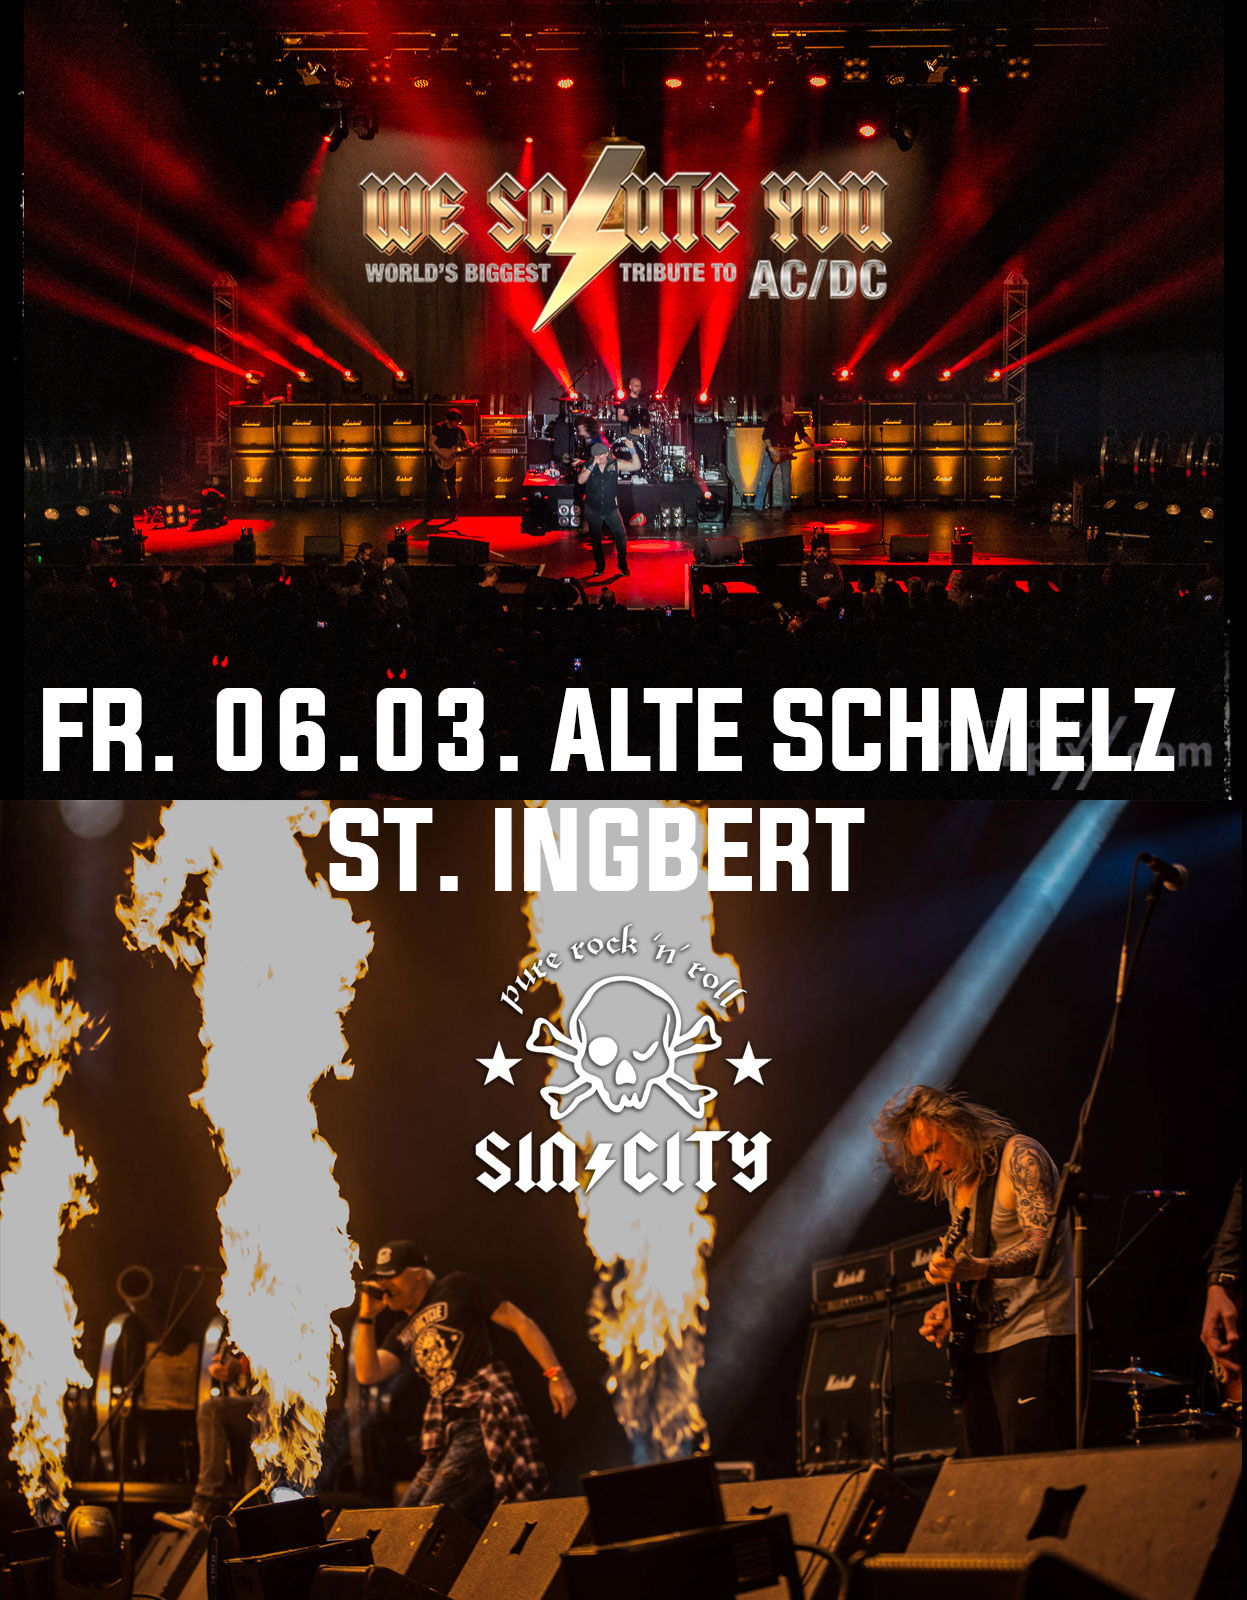 06.03.20 - ALTE SCHMELZ ST. INGBERT<br>SIN/CITY supports WE SALUTE YOU.